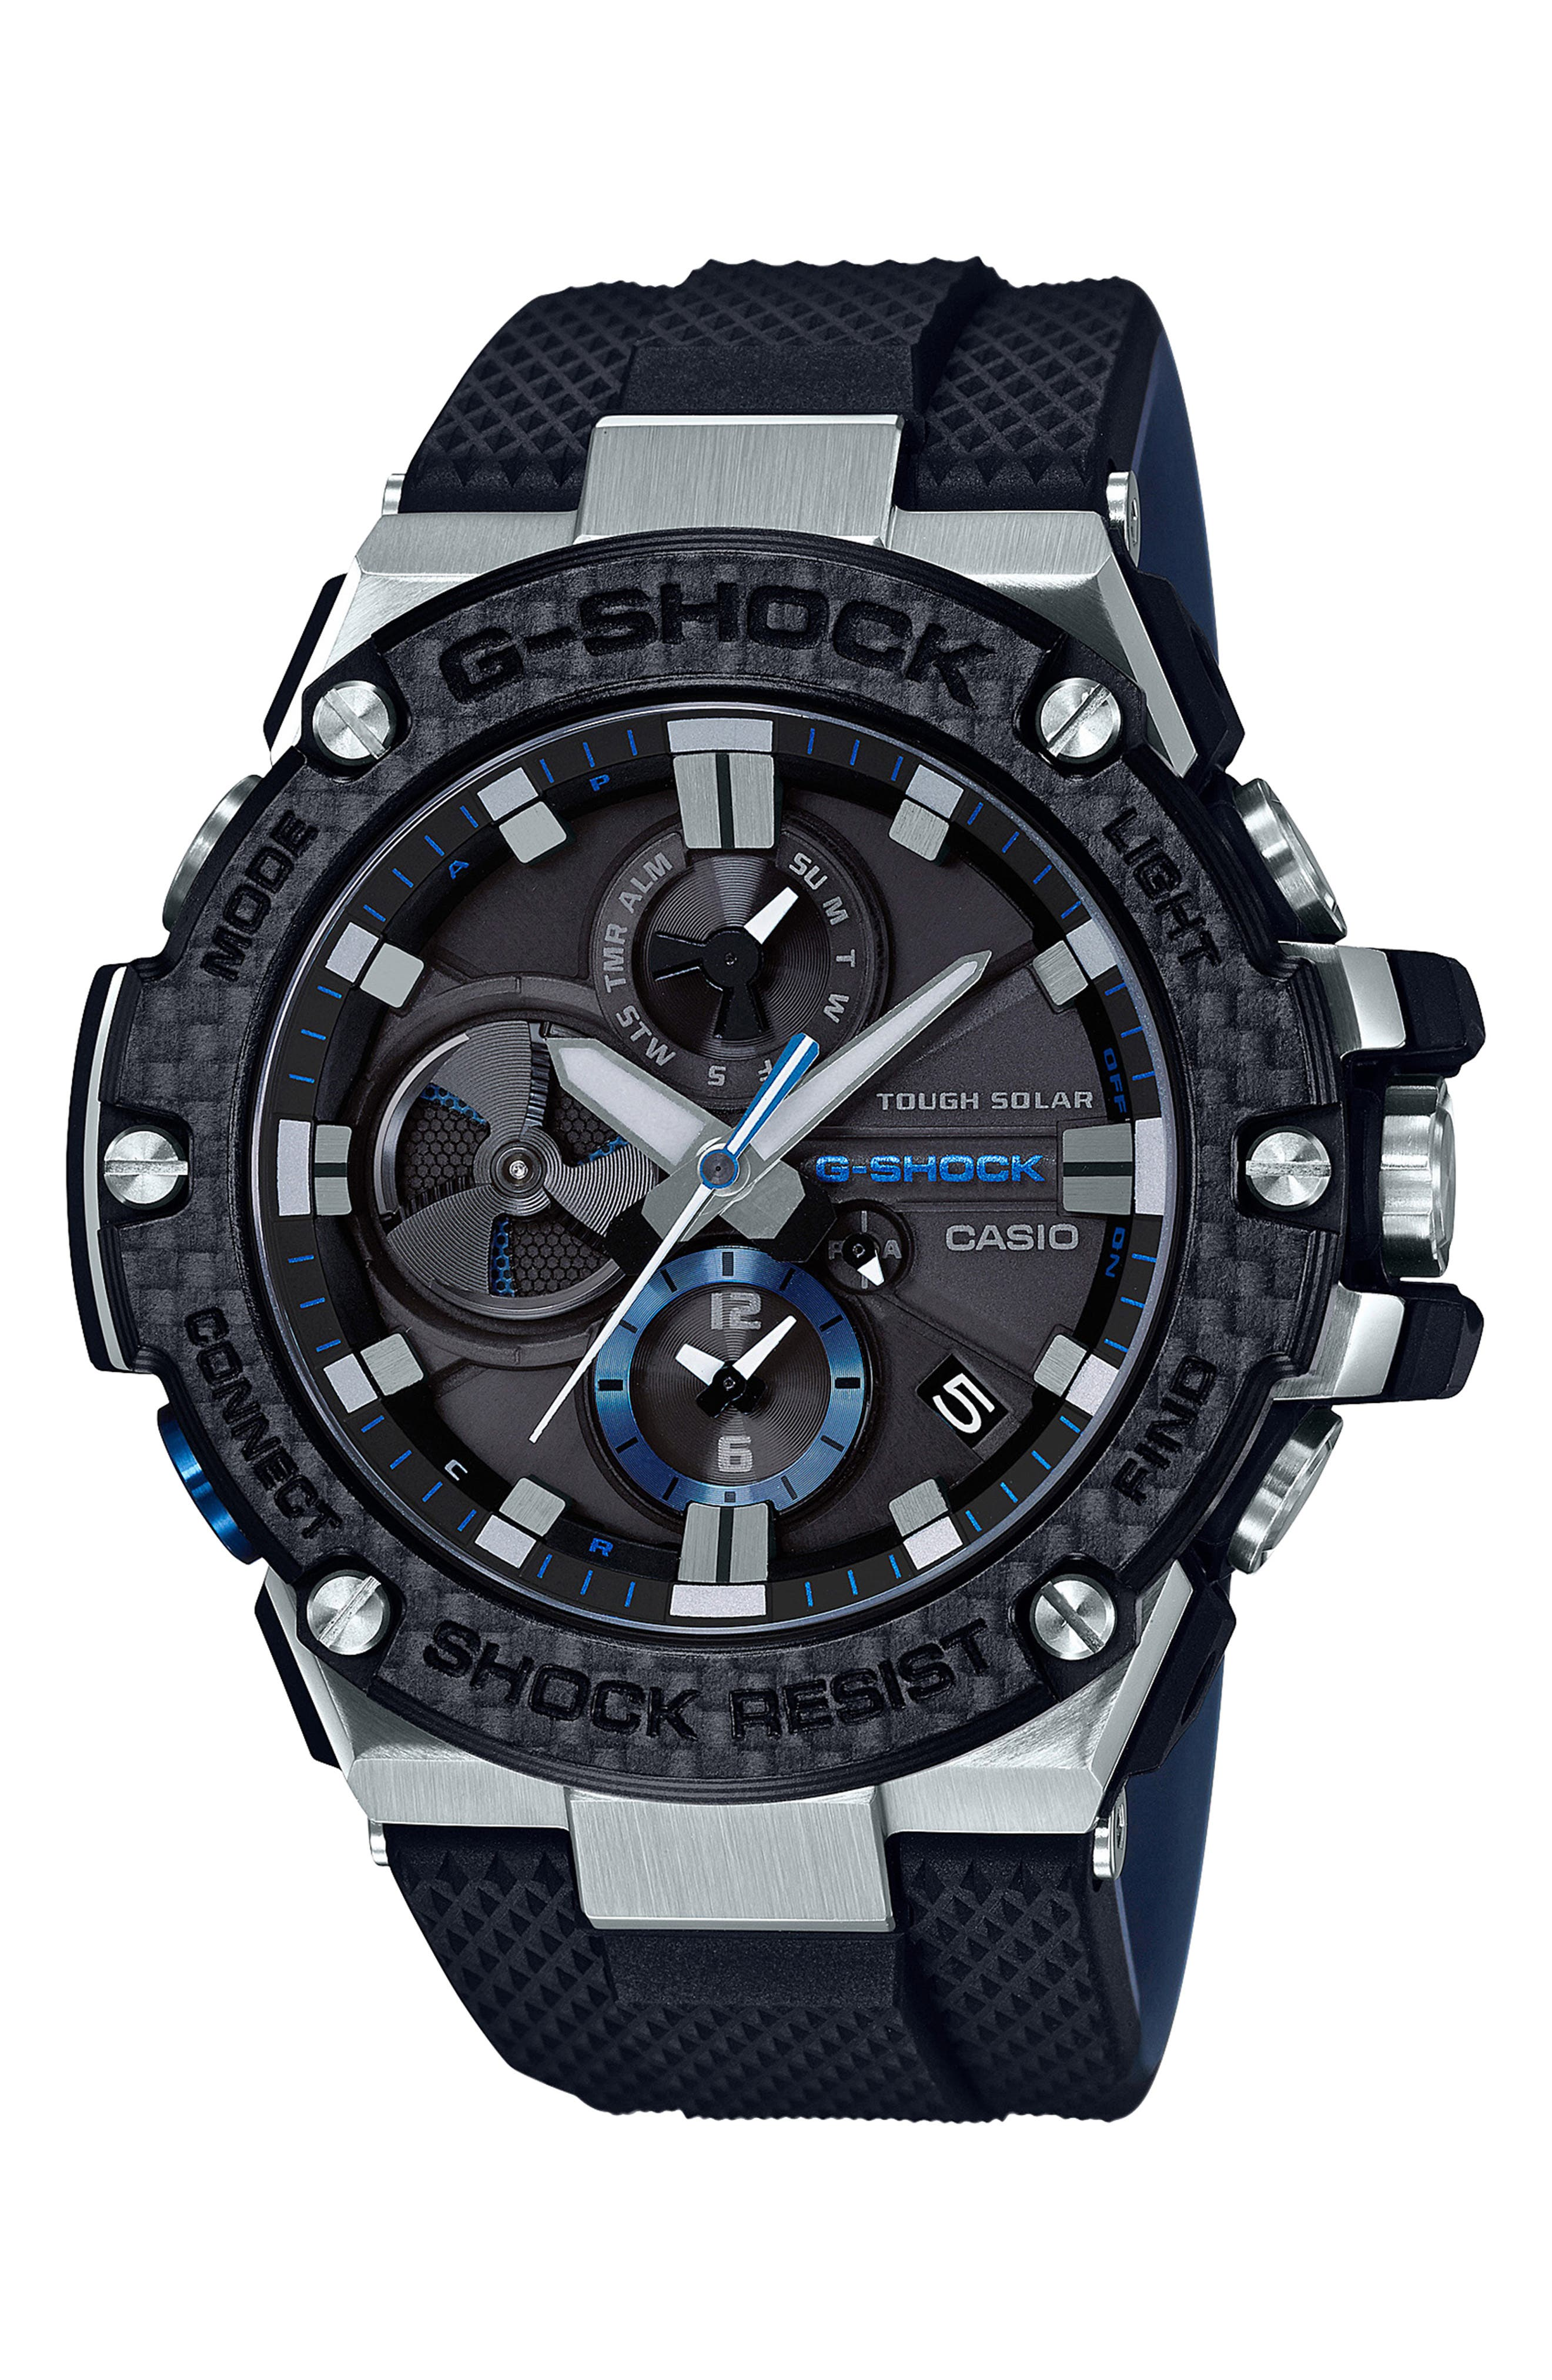 G-Shock G-Steel Resin Casio Analog Watch,                         Main,                         color, BLACK/ SILVER